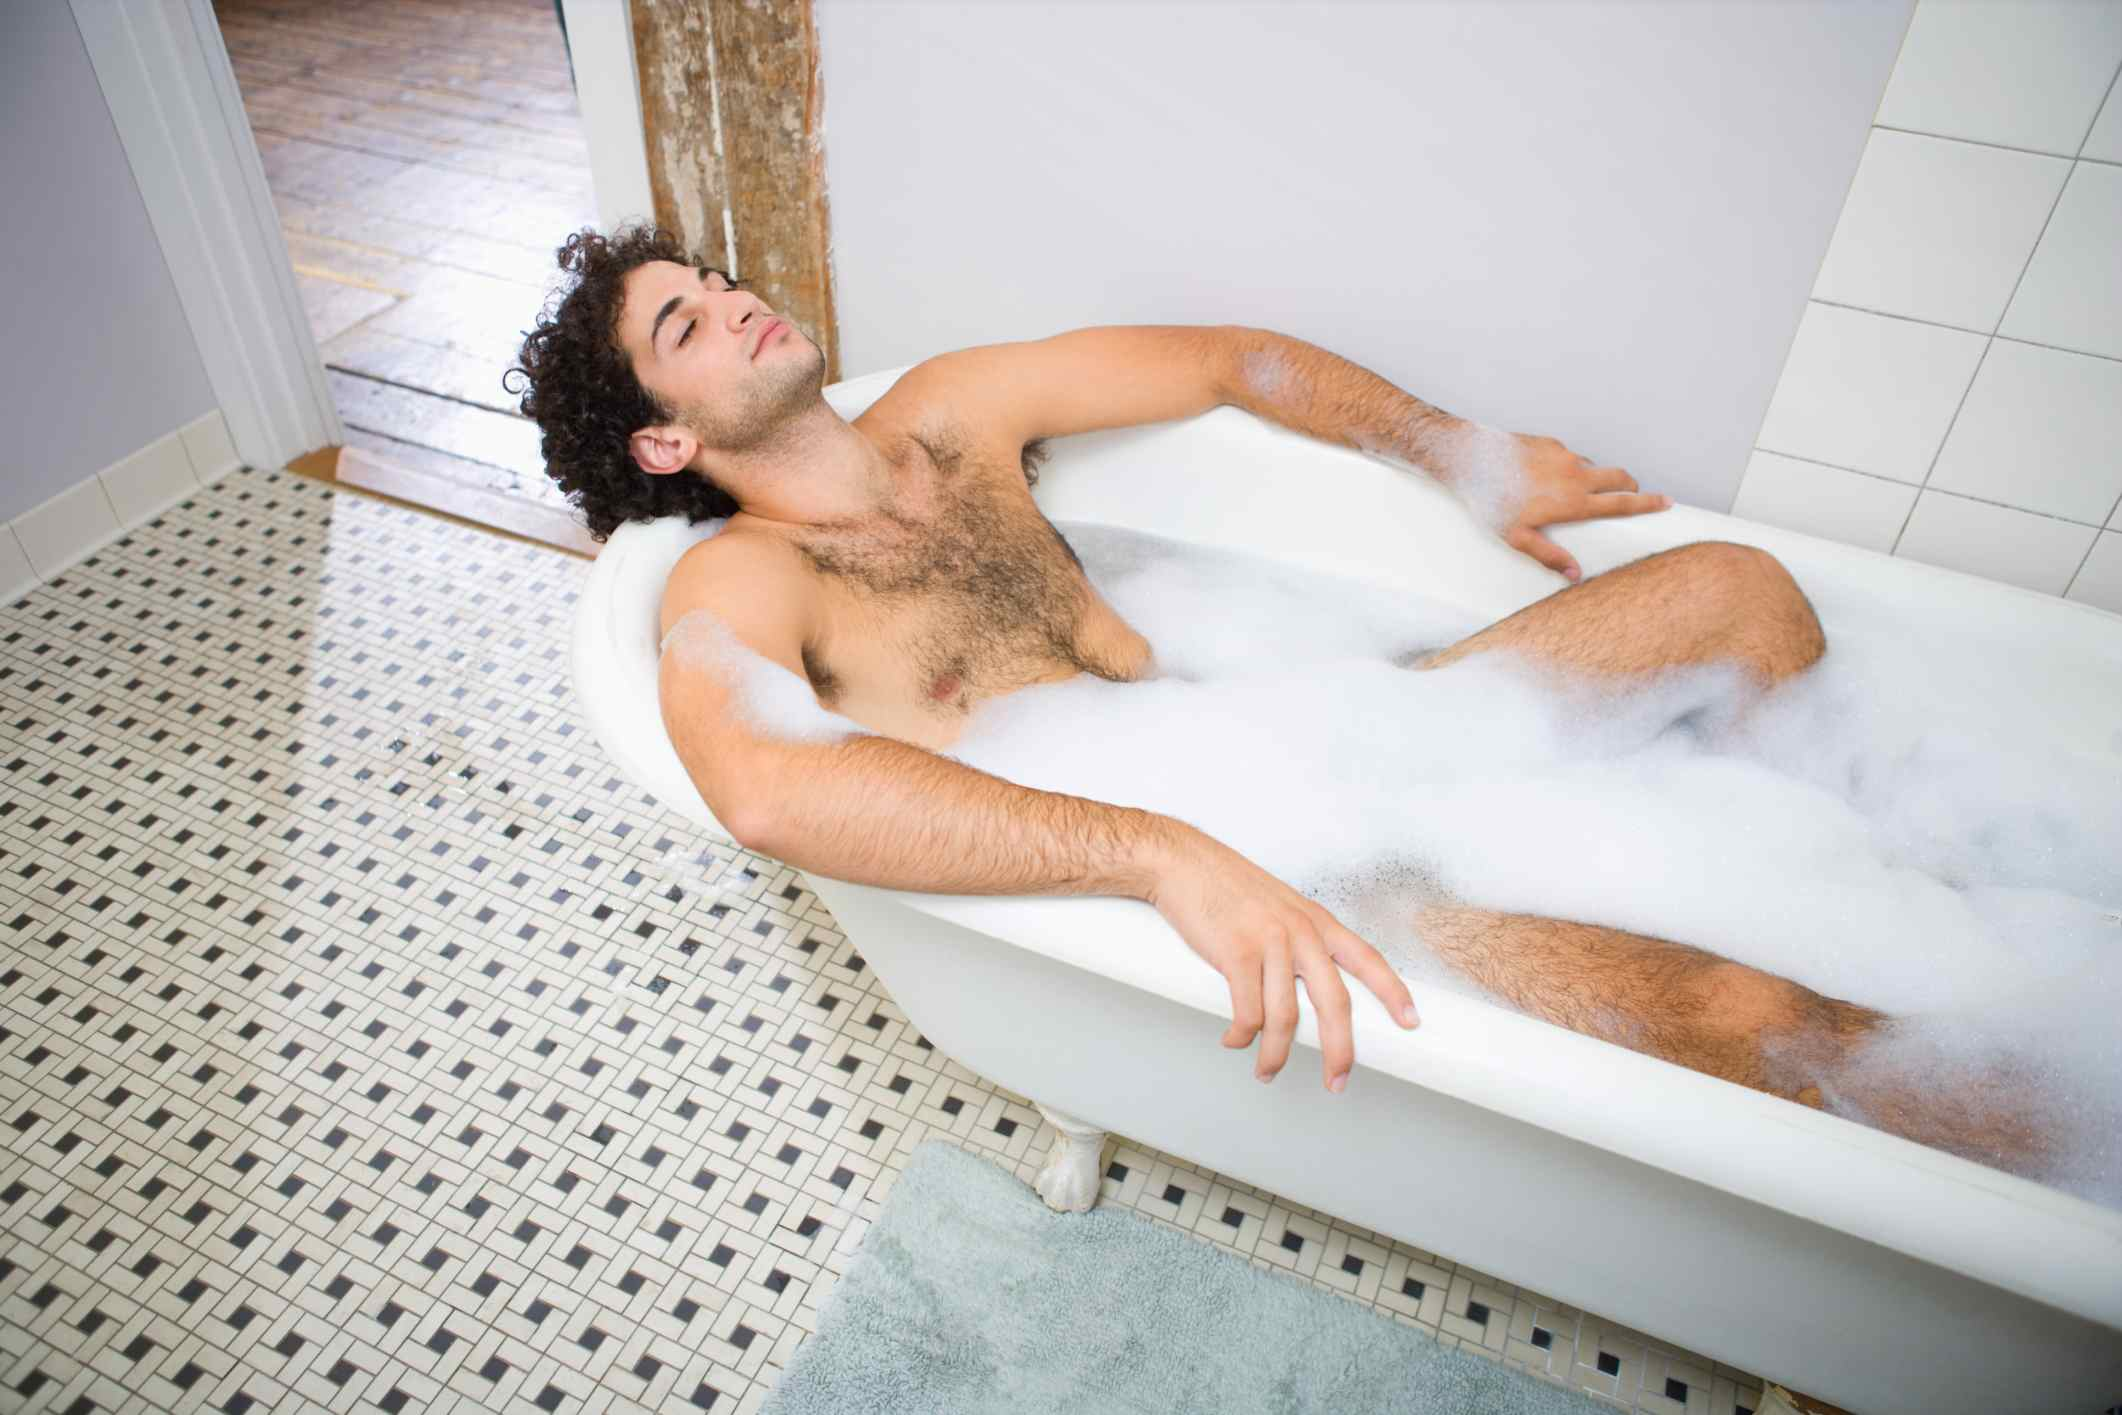 hairy-naked-men-in-a-bath